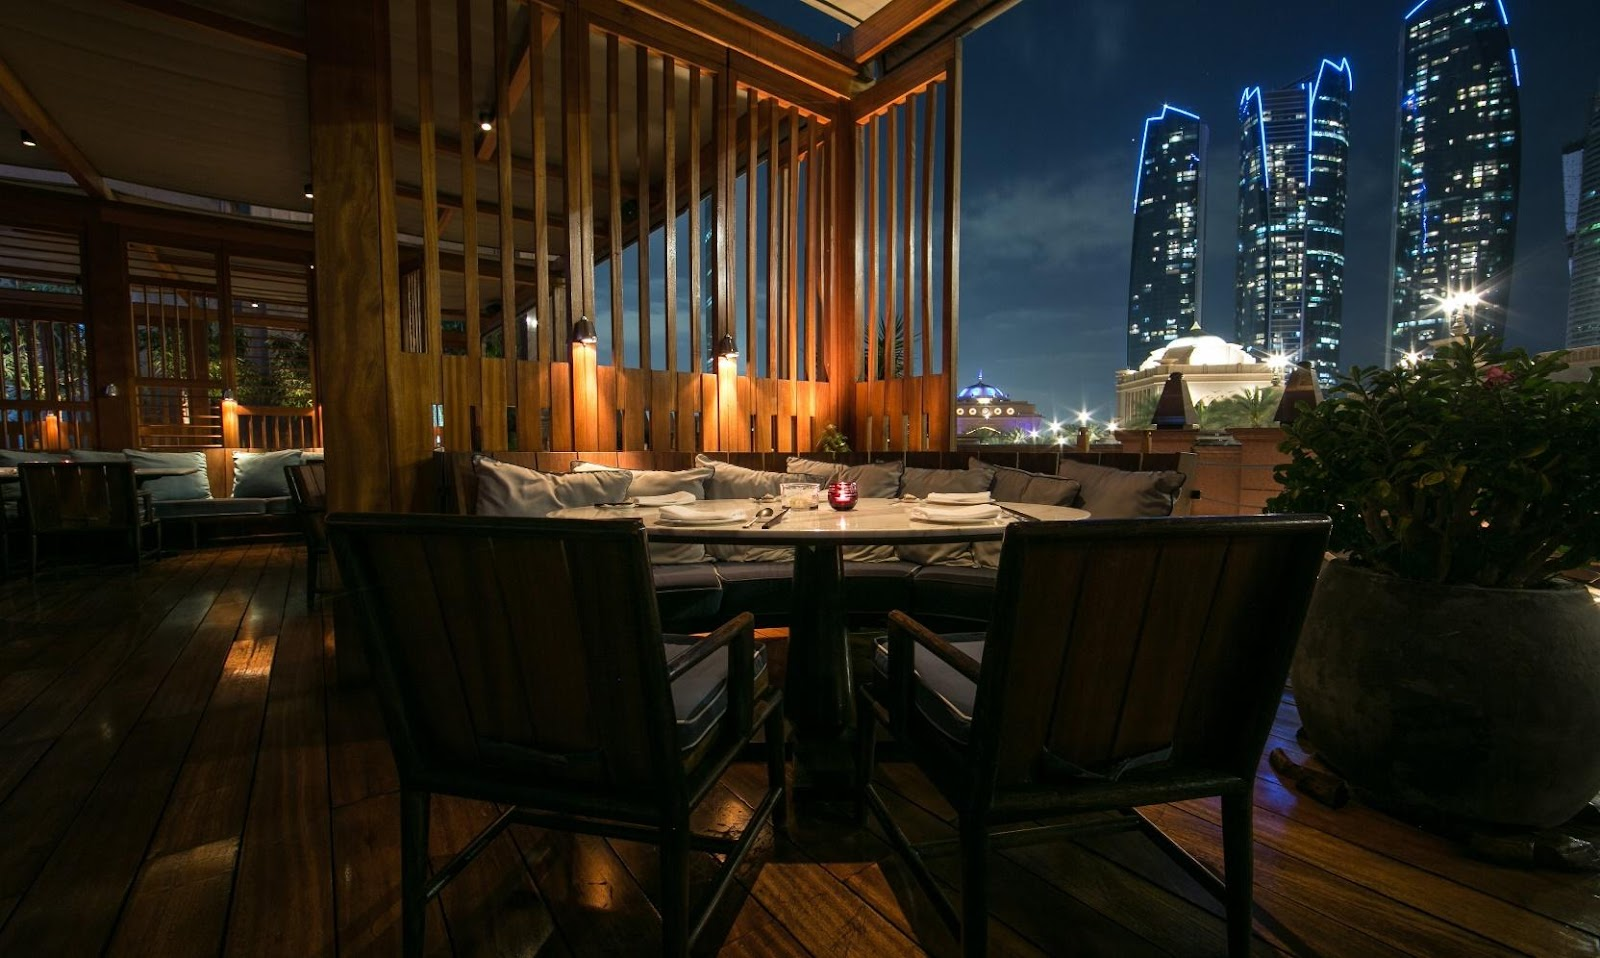 Hakkasan Abu Dhabi, Fine Dining Restaurant and Bar at Emirates Palace